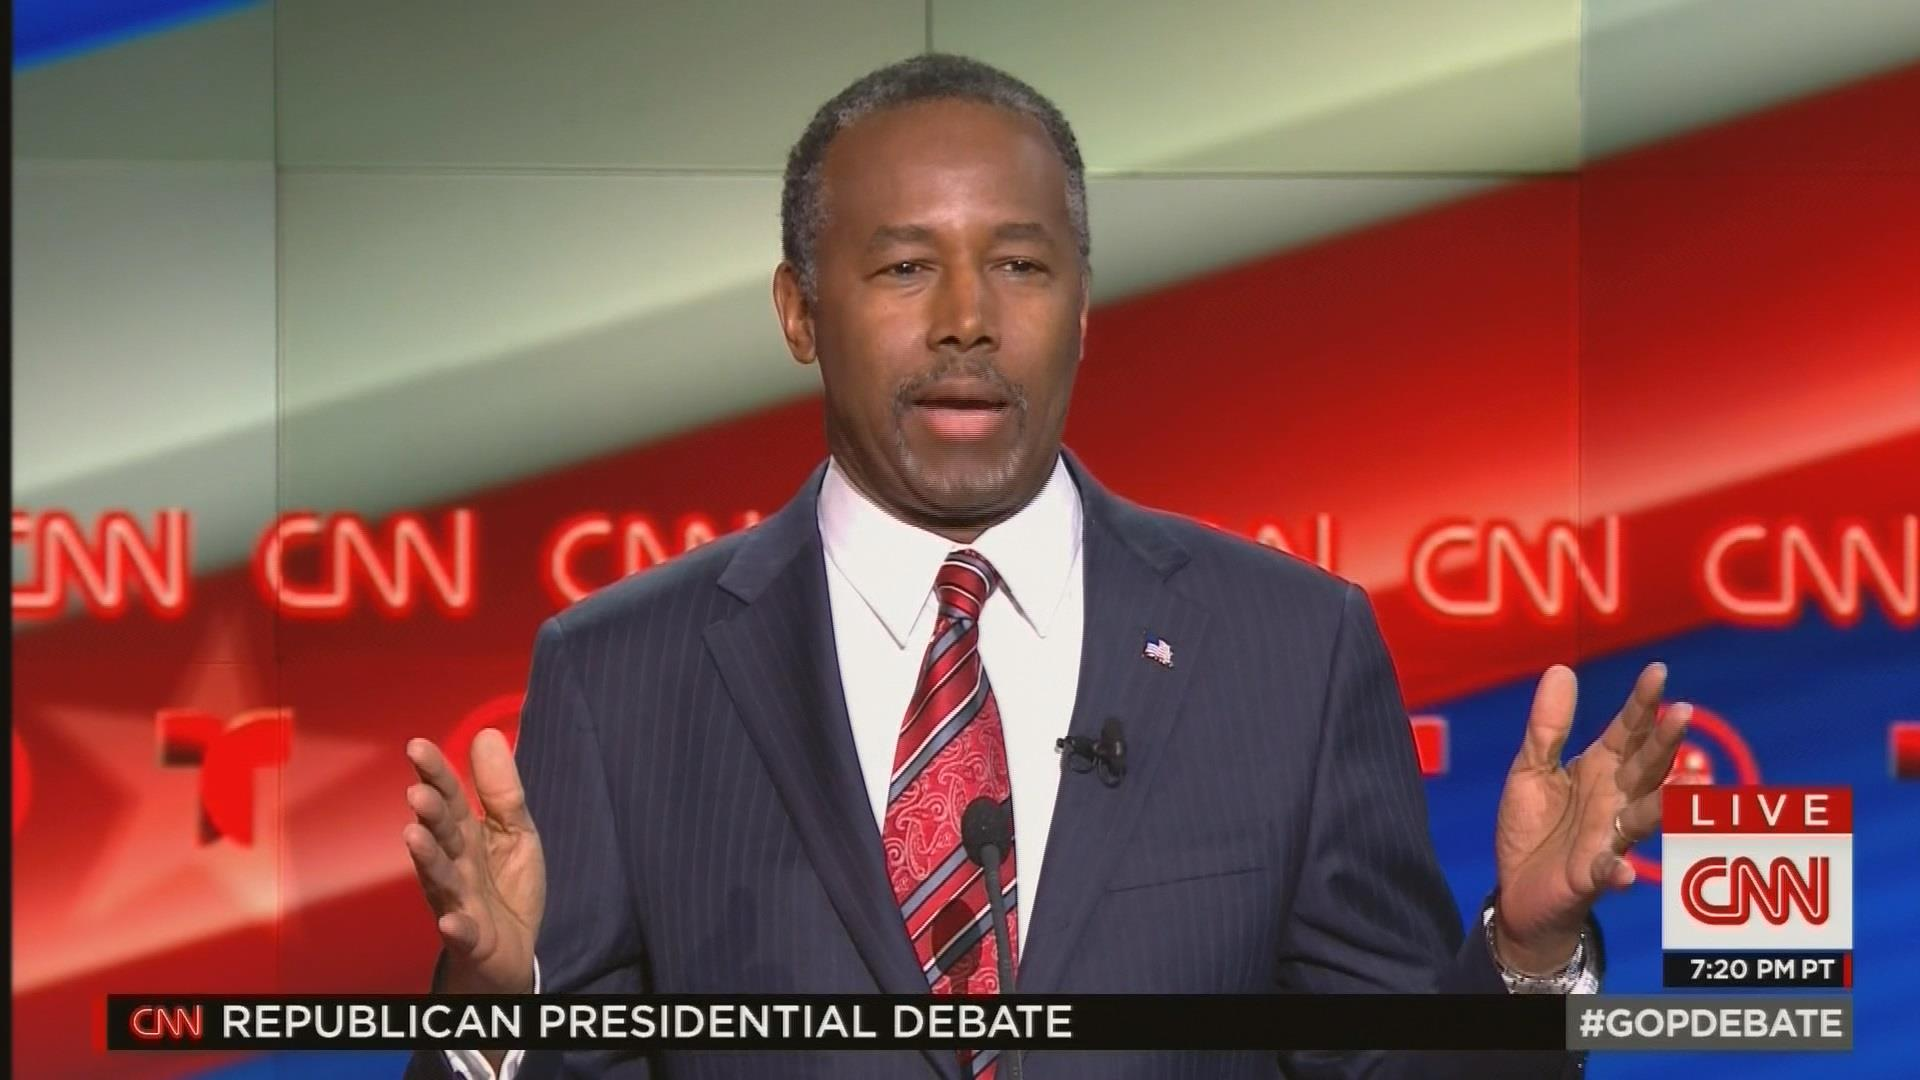 Carson on debate: I'm going to whine